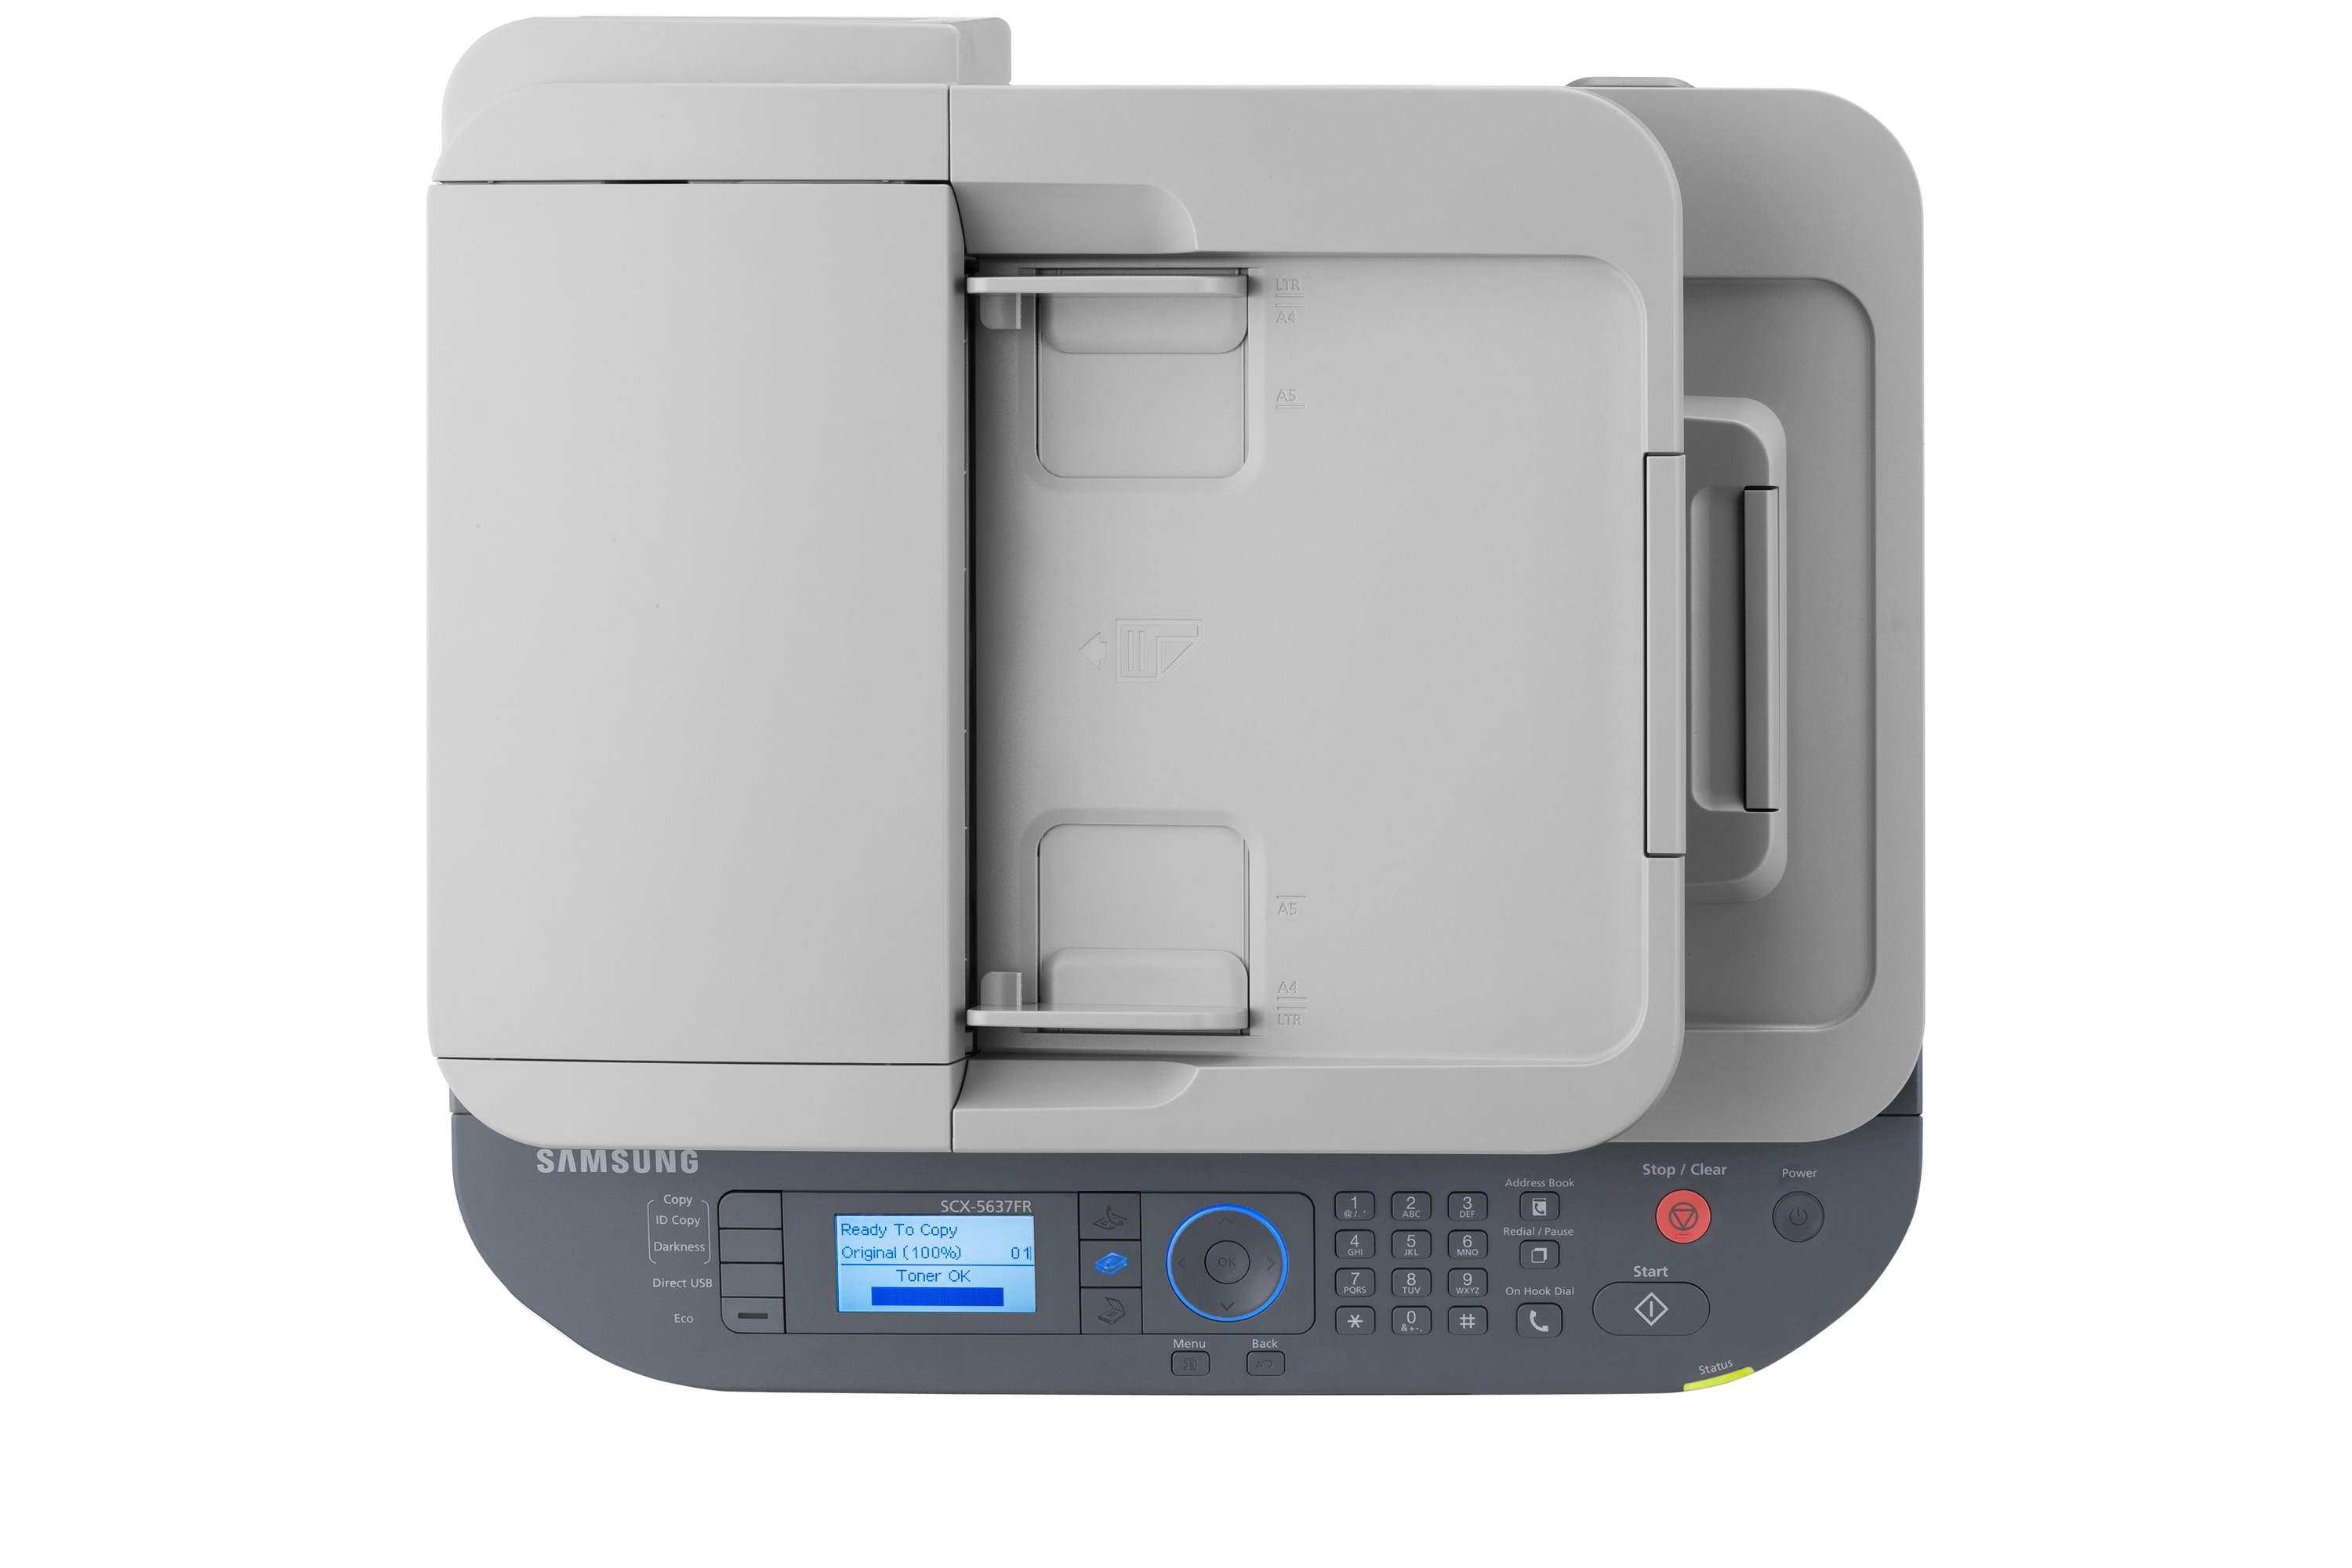 Mono Multifunction Printer (SCX-5637FR)